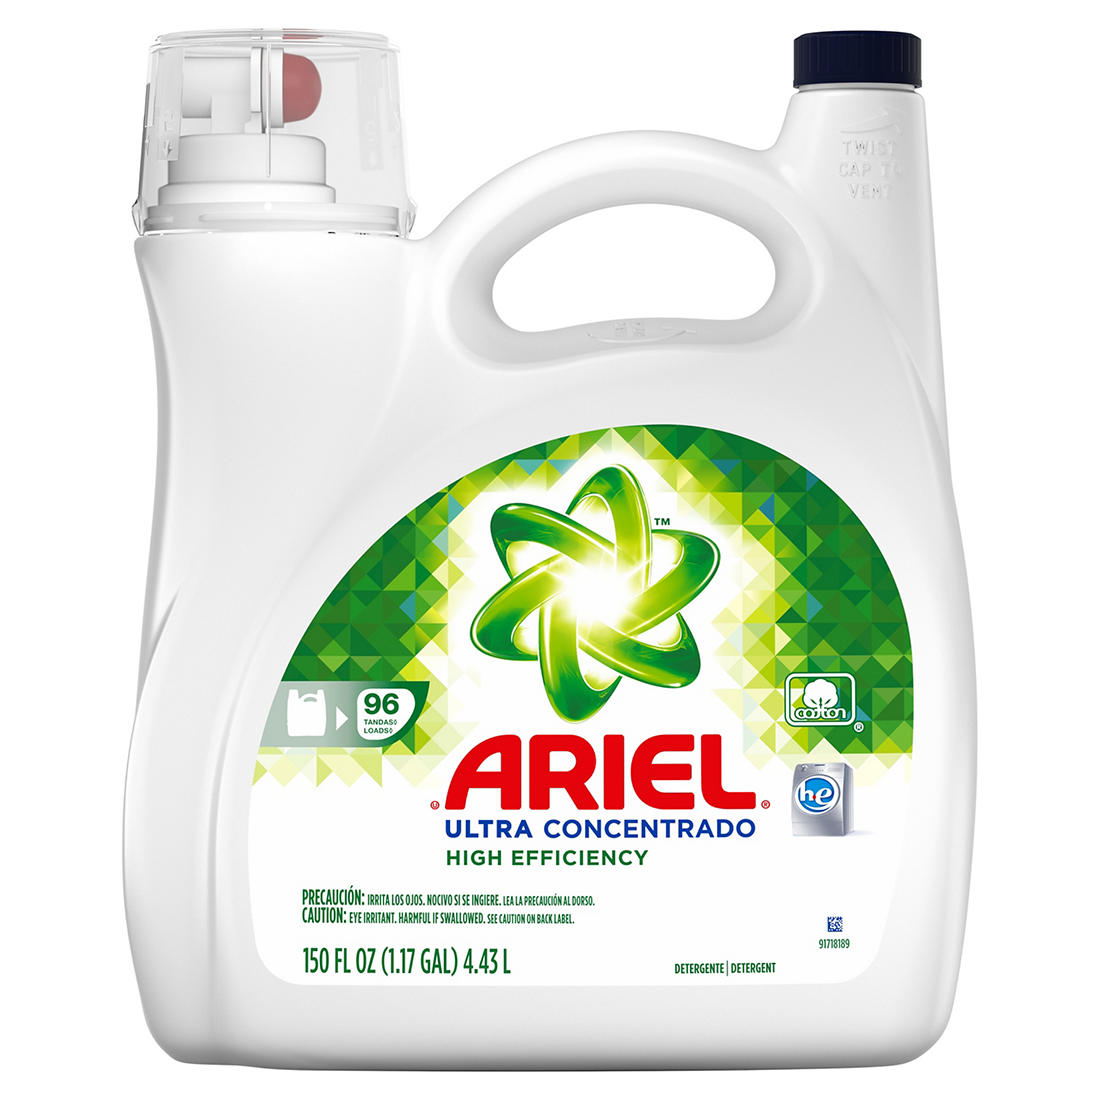 Ariel Ultra Concentrated High Efficiency Liquid Laundry Detergent, 96  Loads, 150 fl  oz